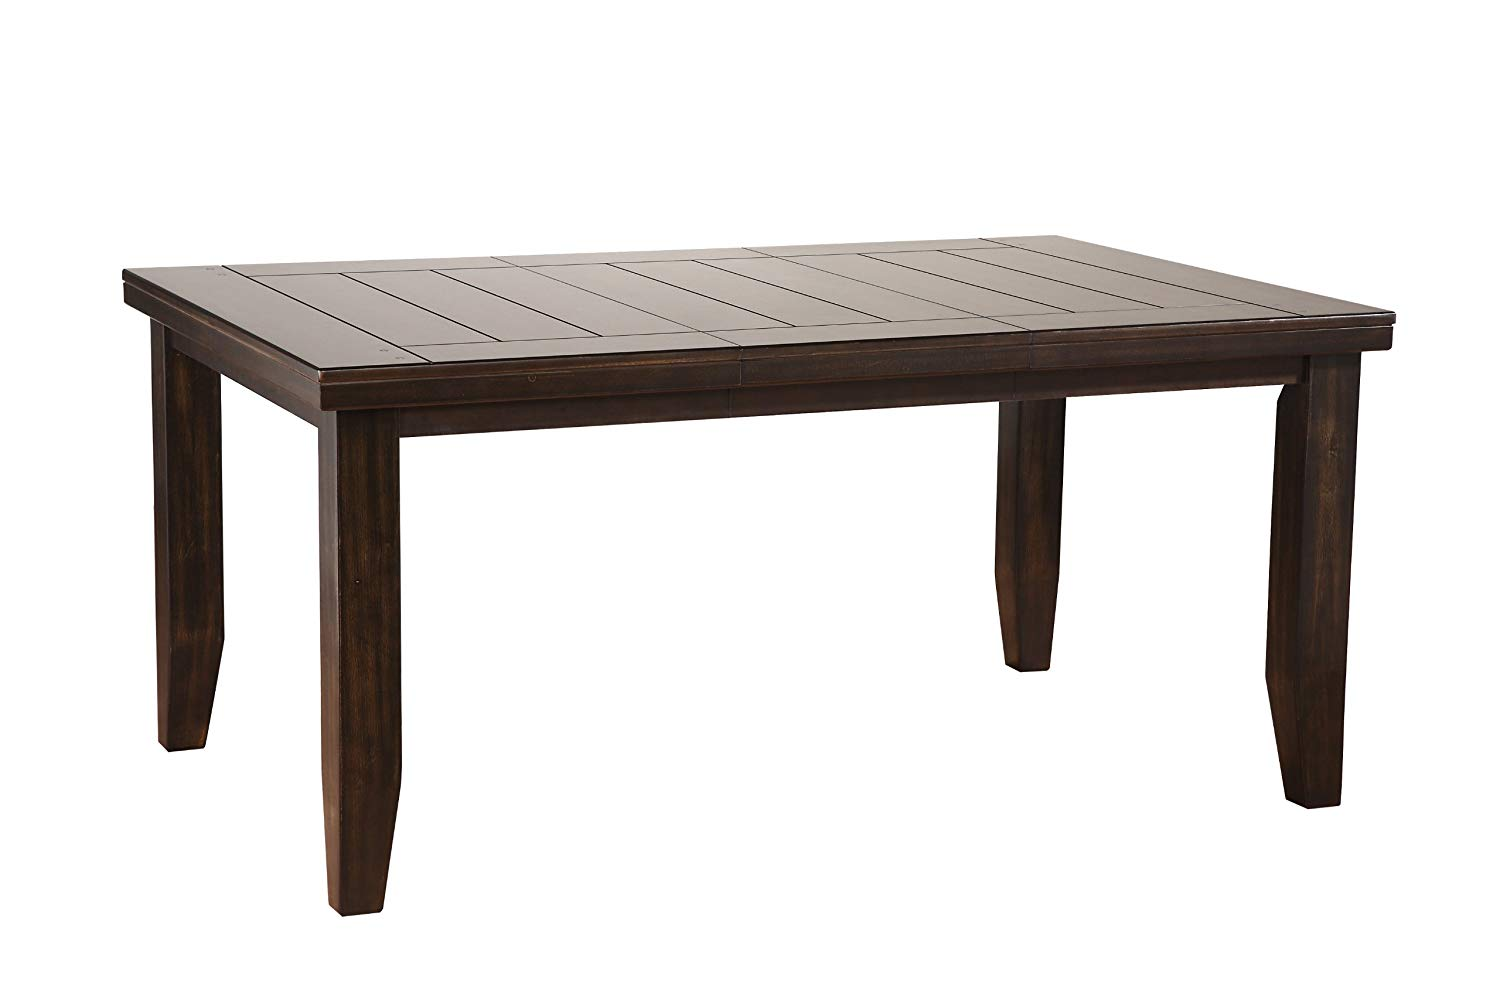 ACME Urbana Dining Table, Espresso Finish